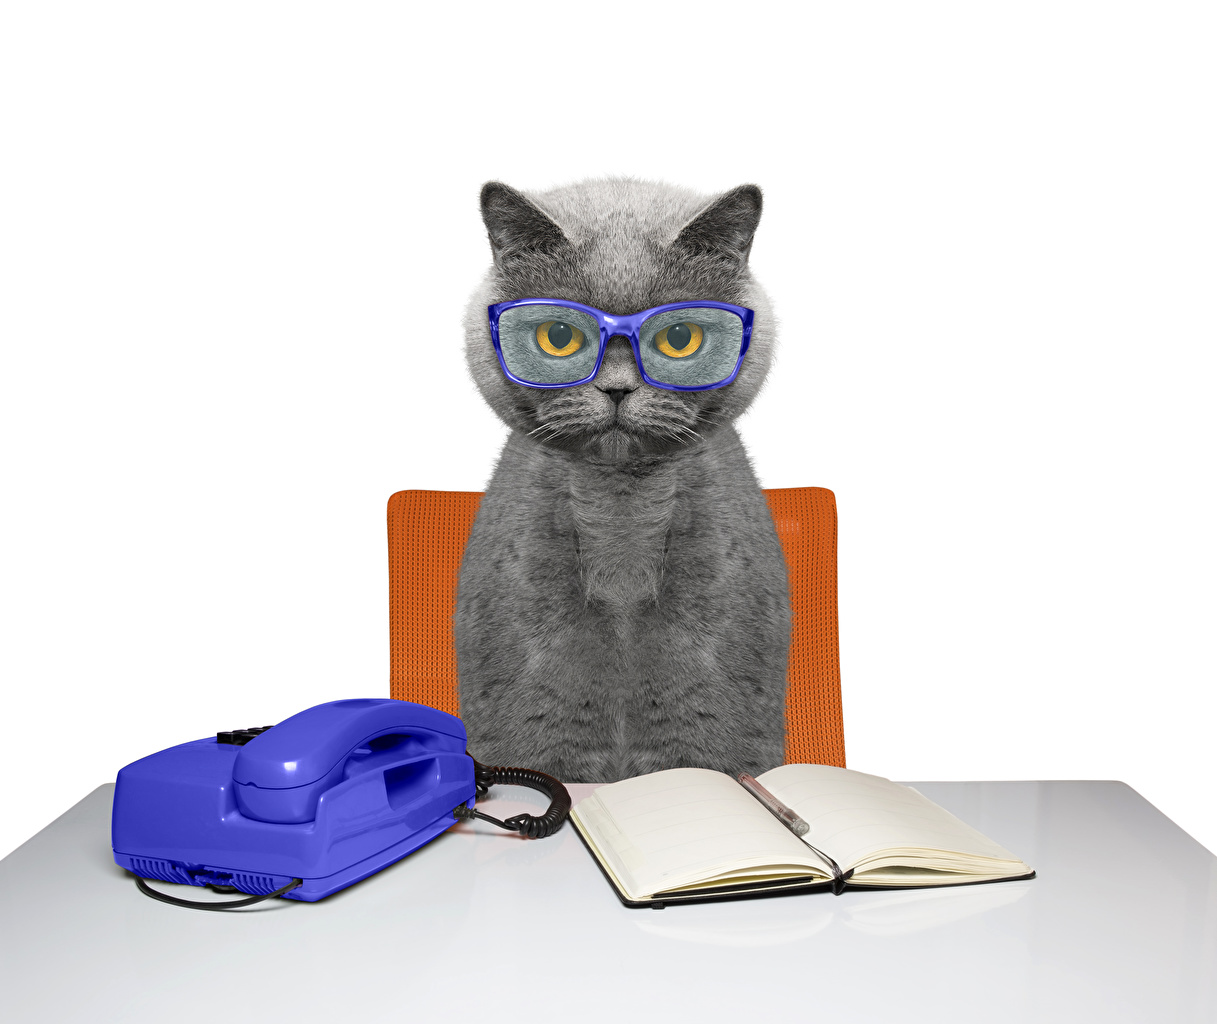 Photo Cats phone Notebooks Table Glasses Animals Telephone eyeglasses animal